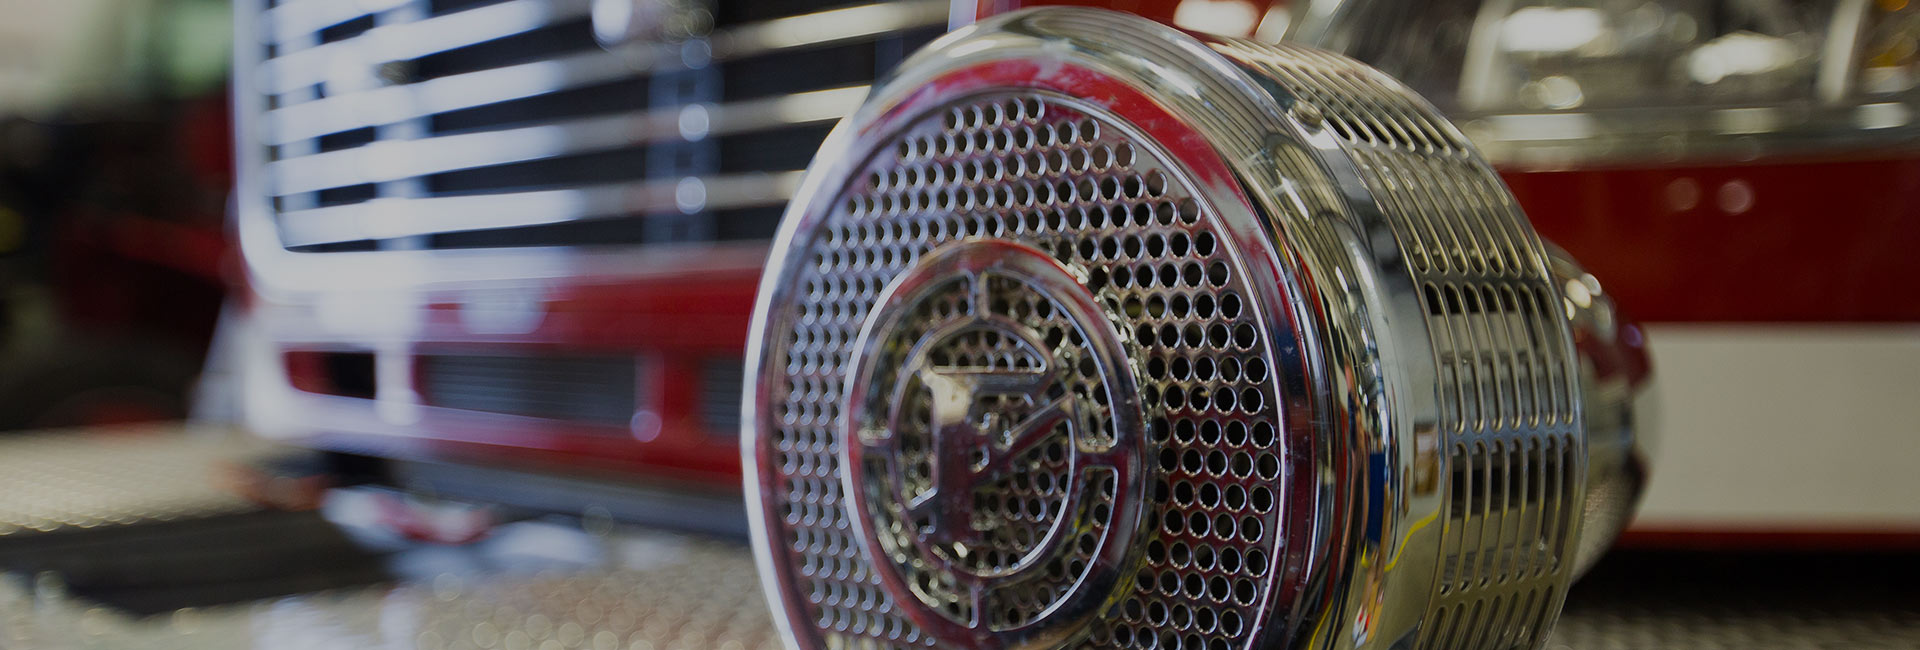 front grill of fire truck